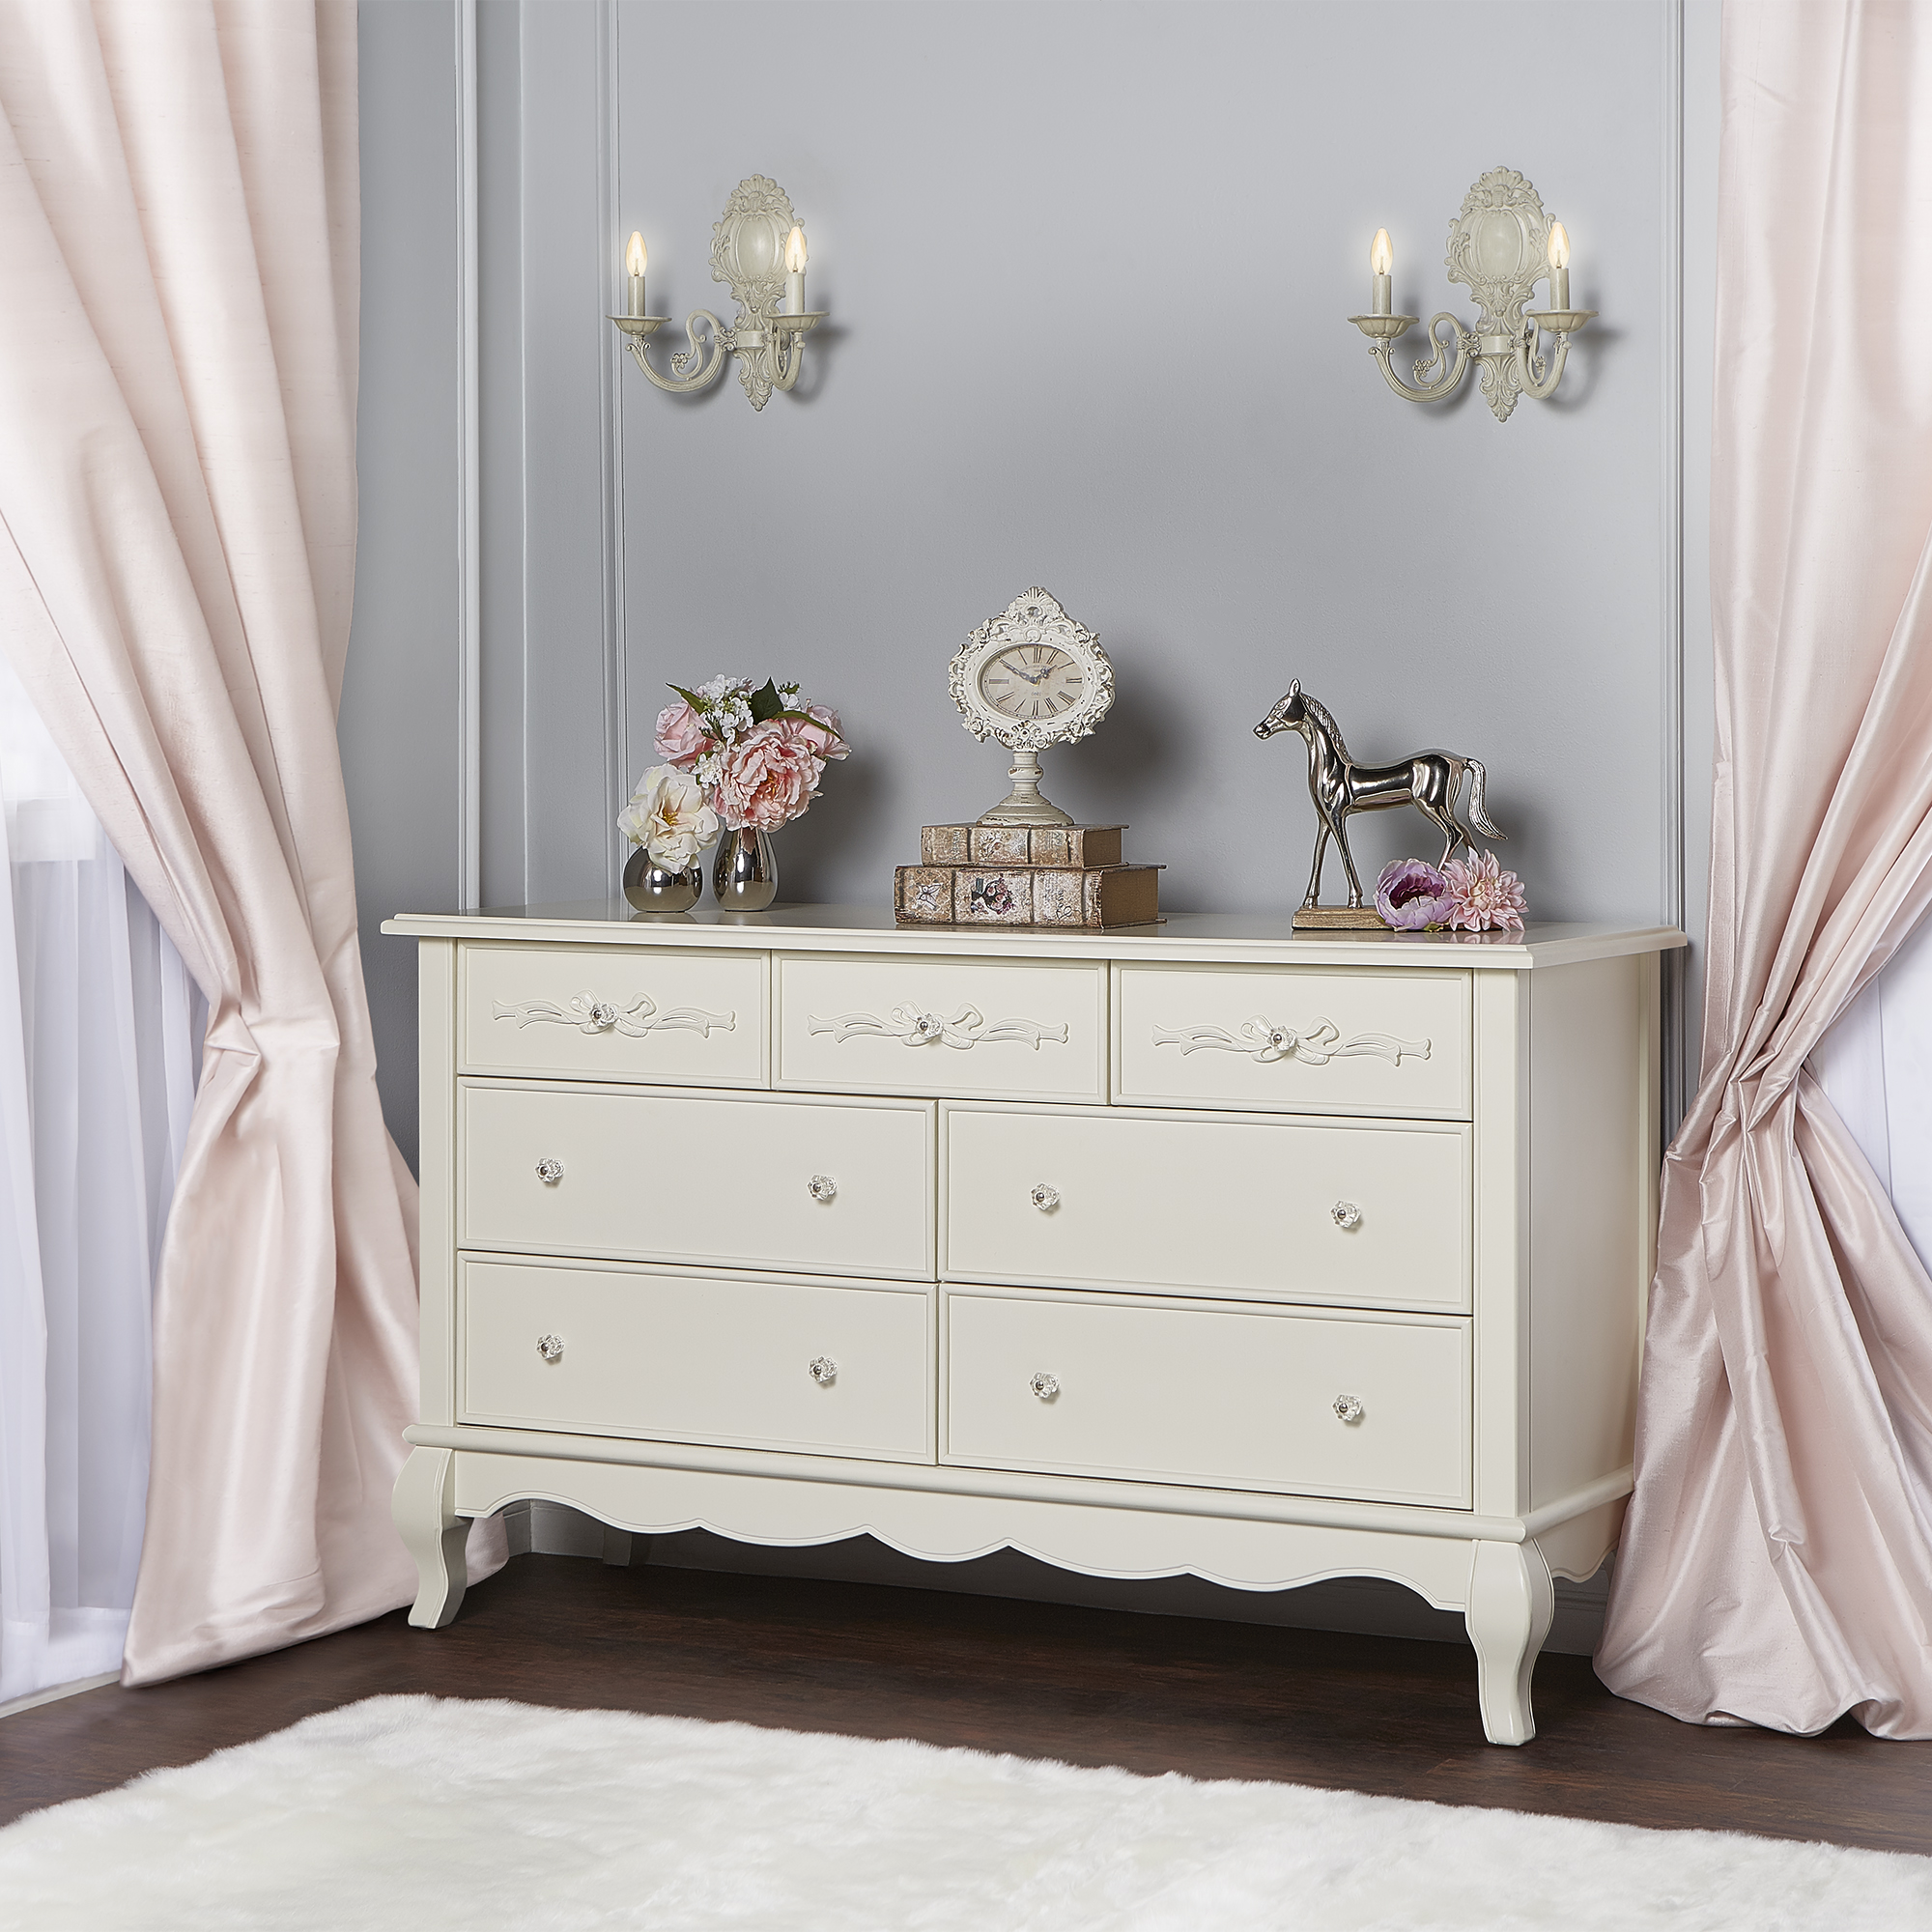 Evolur Aurora 7-Drawer Double Dresser, Ivory Lace